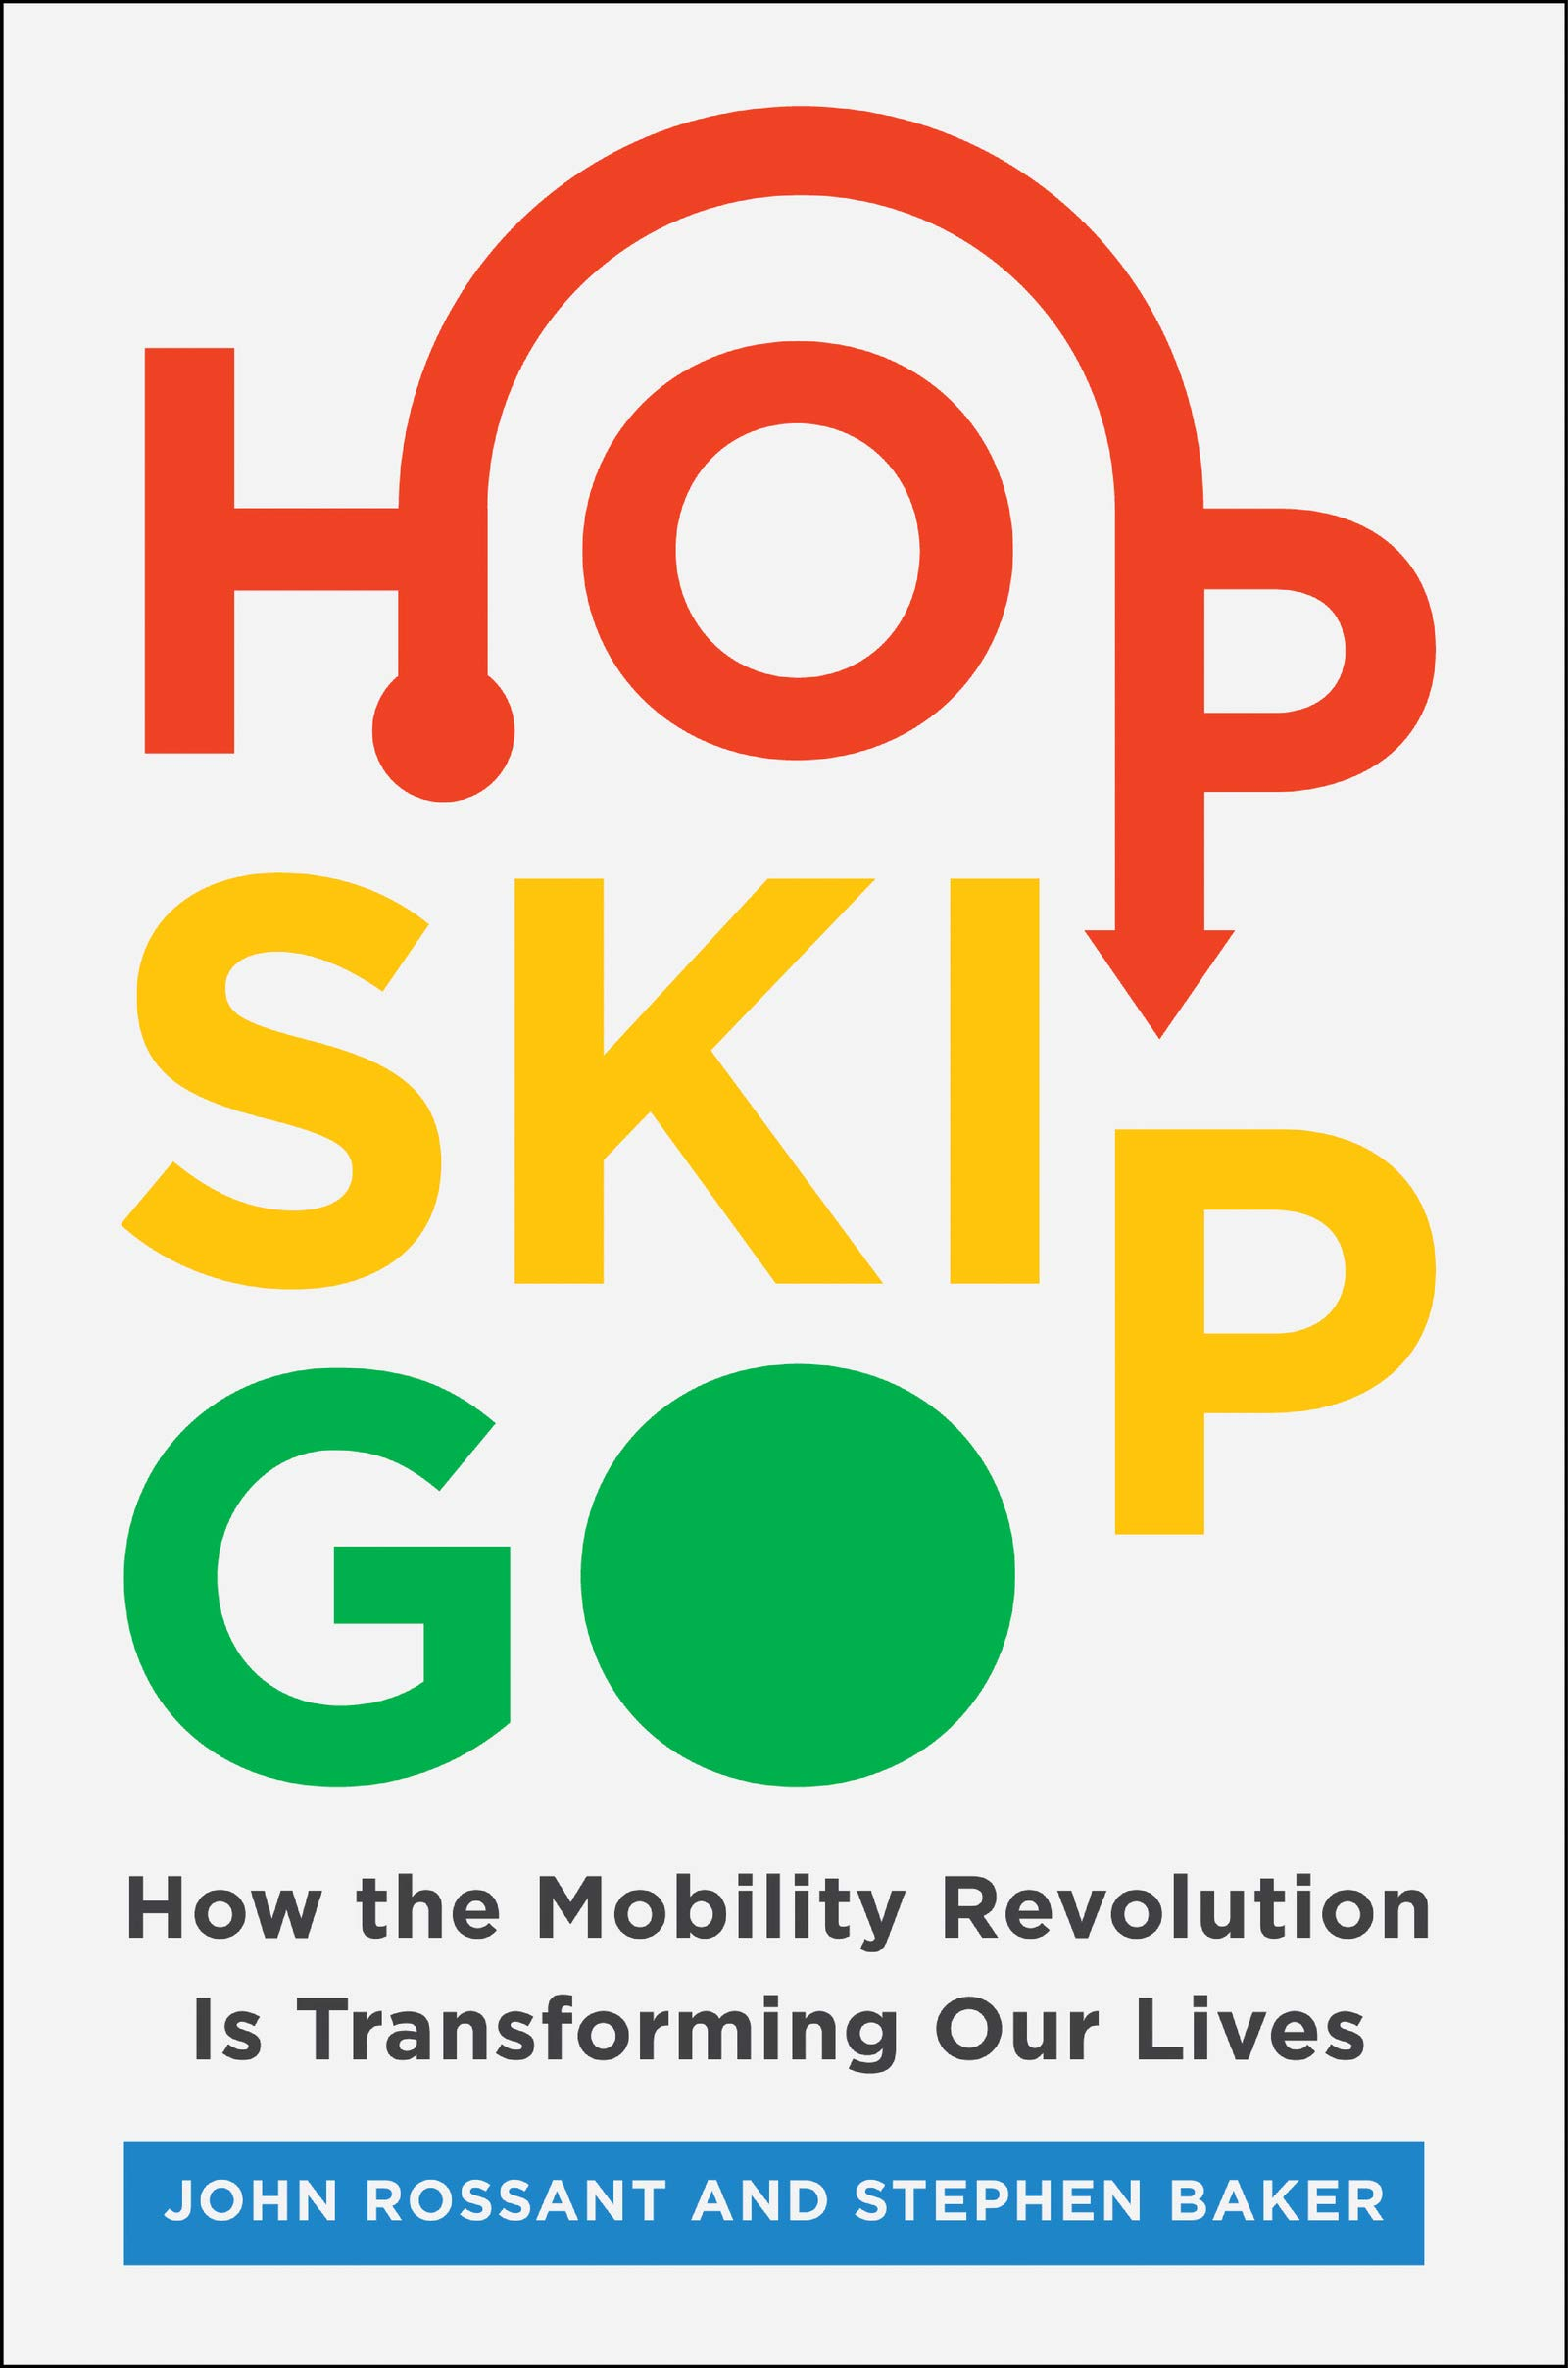 Image OfHop, Skip, Go: How The Mobility Revolution Is Transforming Our Lives